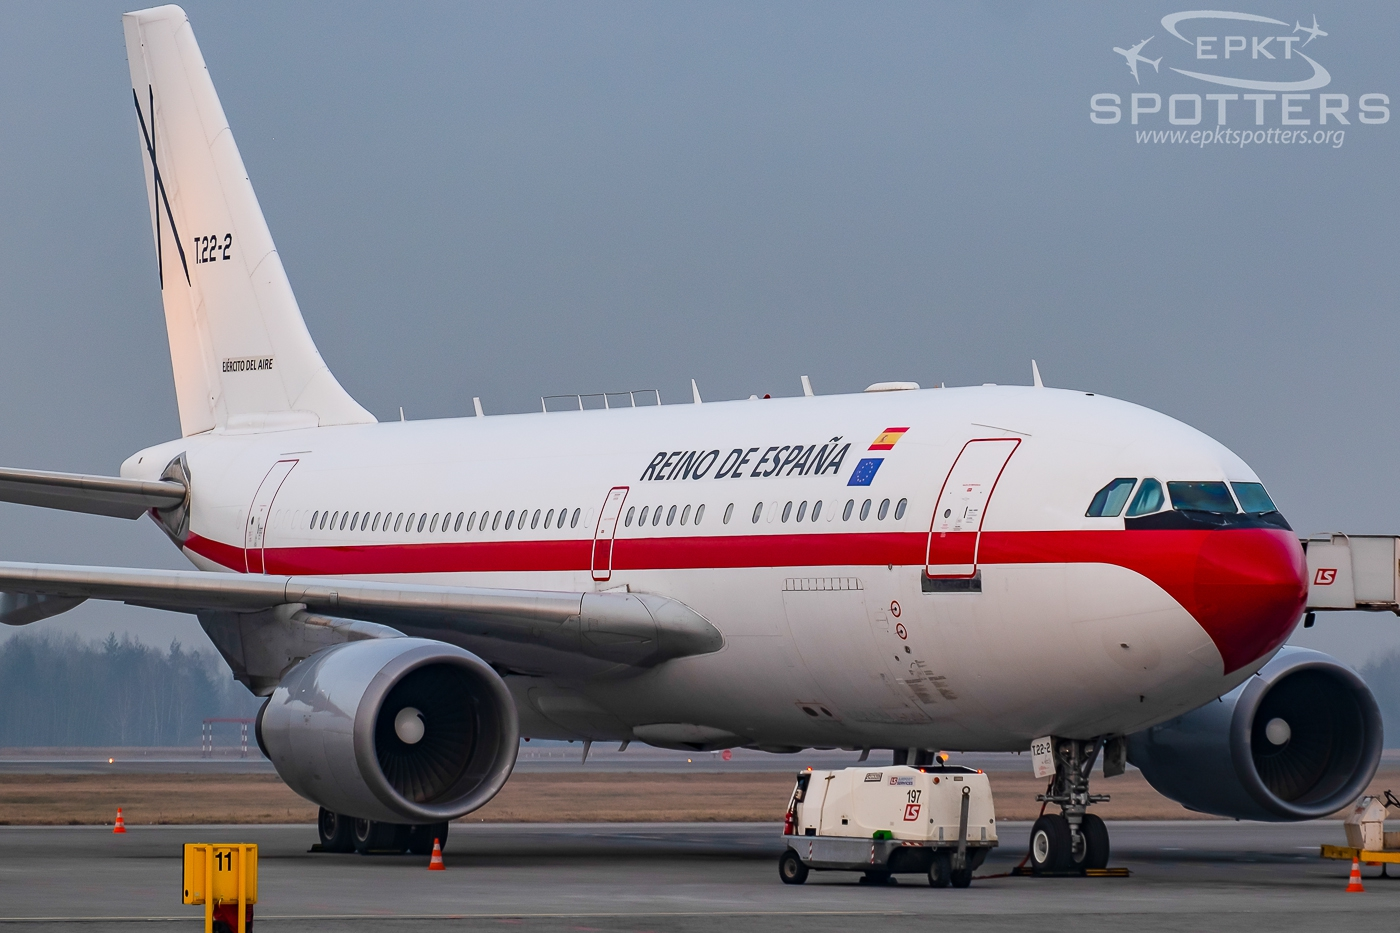 T.22-2 - Airbus A310 -304 (Spain - Air Force) / Pyrzowice - Katowice Poland [EPKT/KTW]